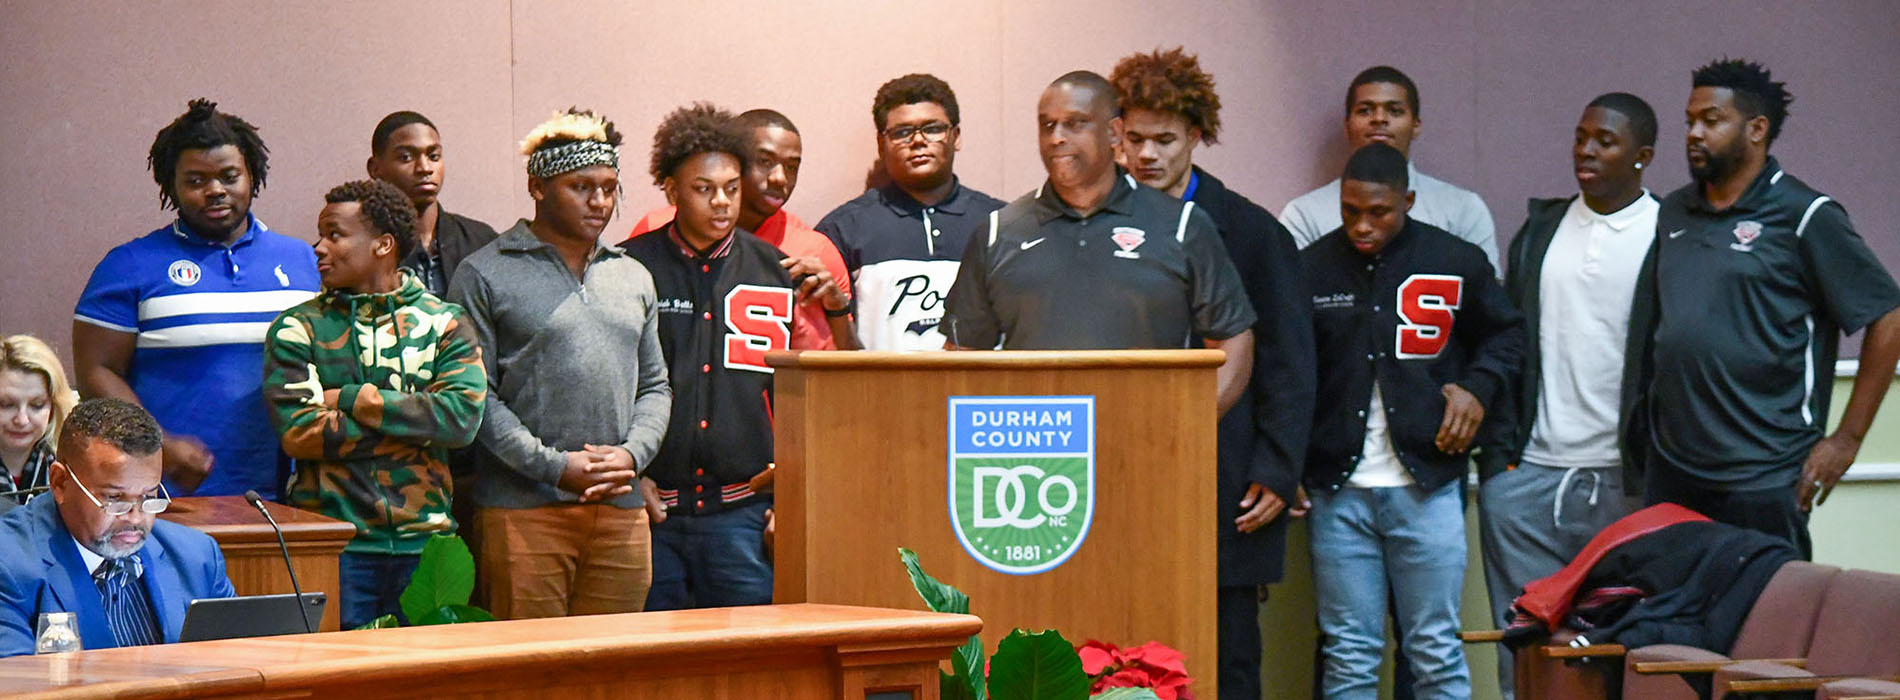 Members of the Southern High School football team stand at the December 9 BOCC meeting